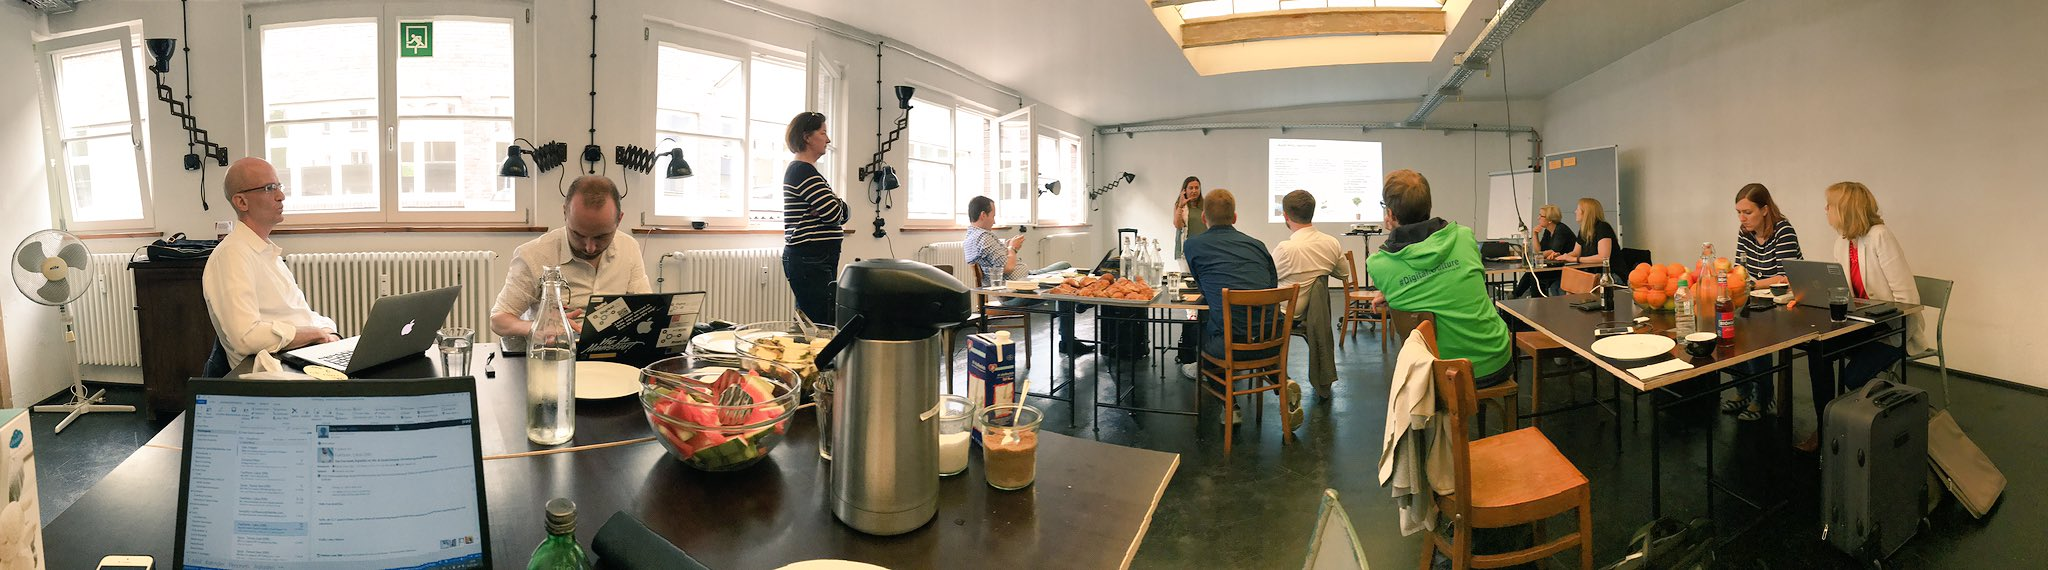 This is how work can looks like 😊 #wolCoP #cocreation #socialcollaboration w/ @petra_muc @IlonaLibal @bastihollmann and many more ✌🏻 https://t.co/fan4VPjImH